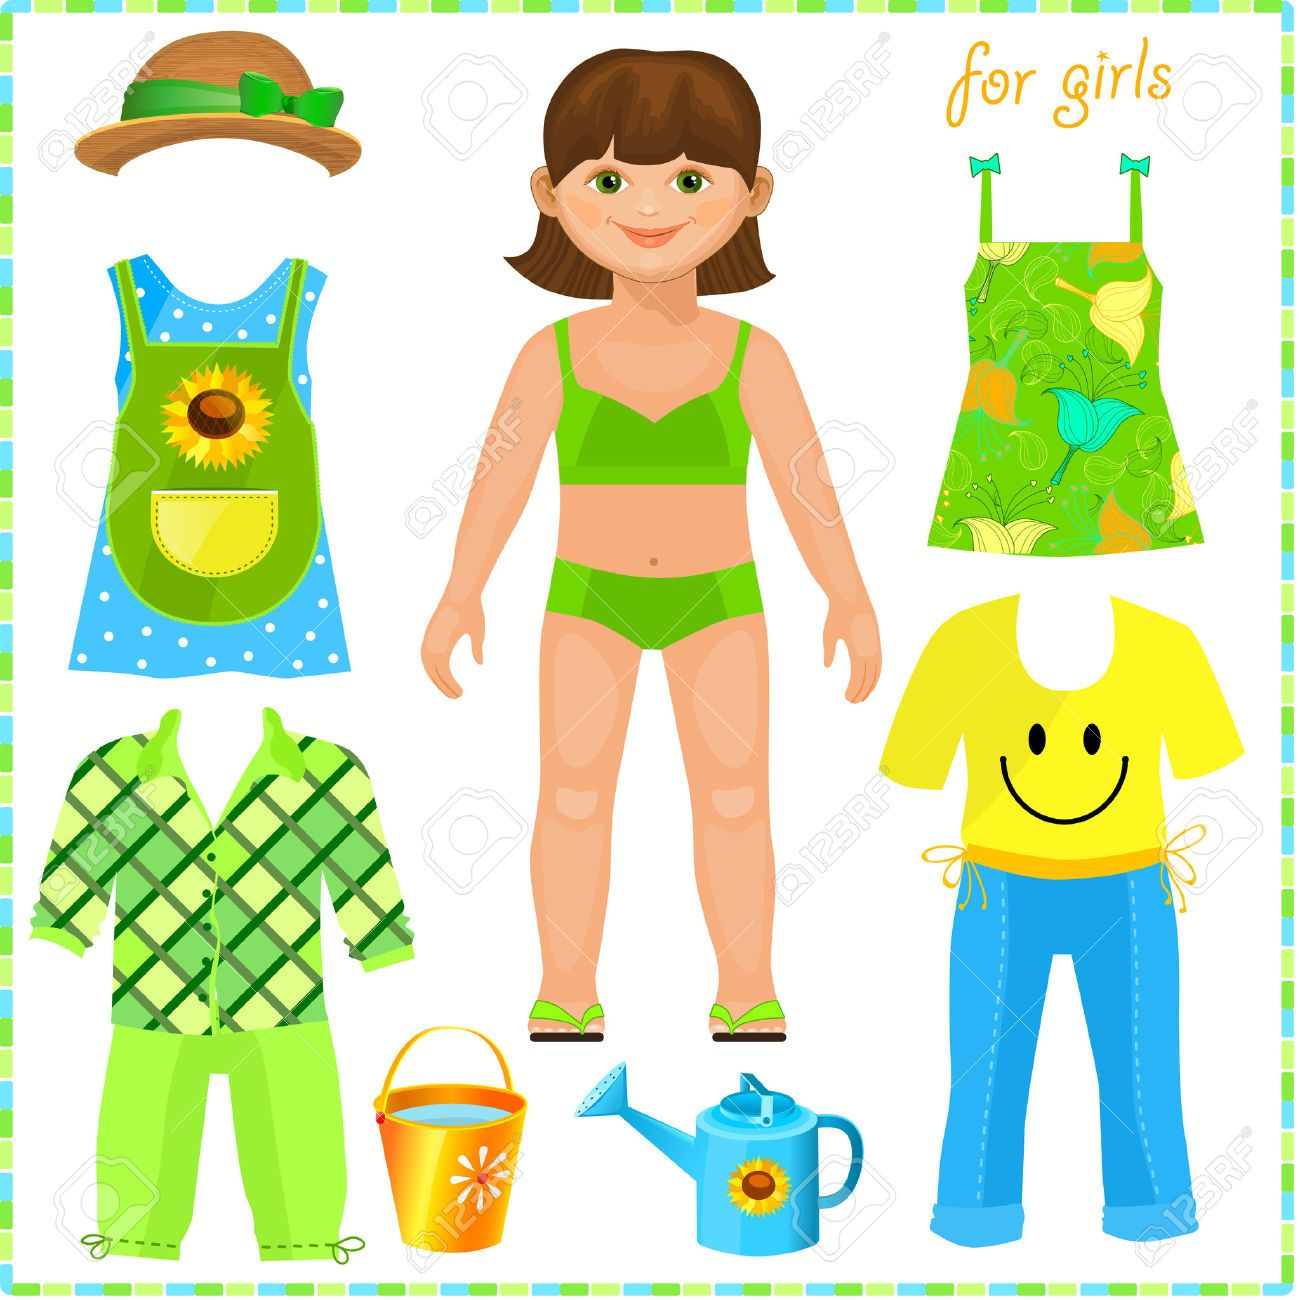 free paper dolls with clothes clipart.